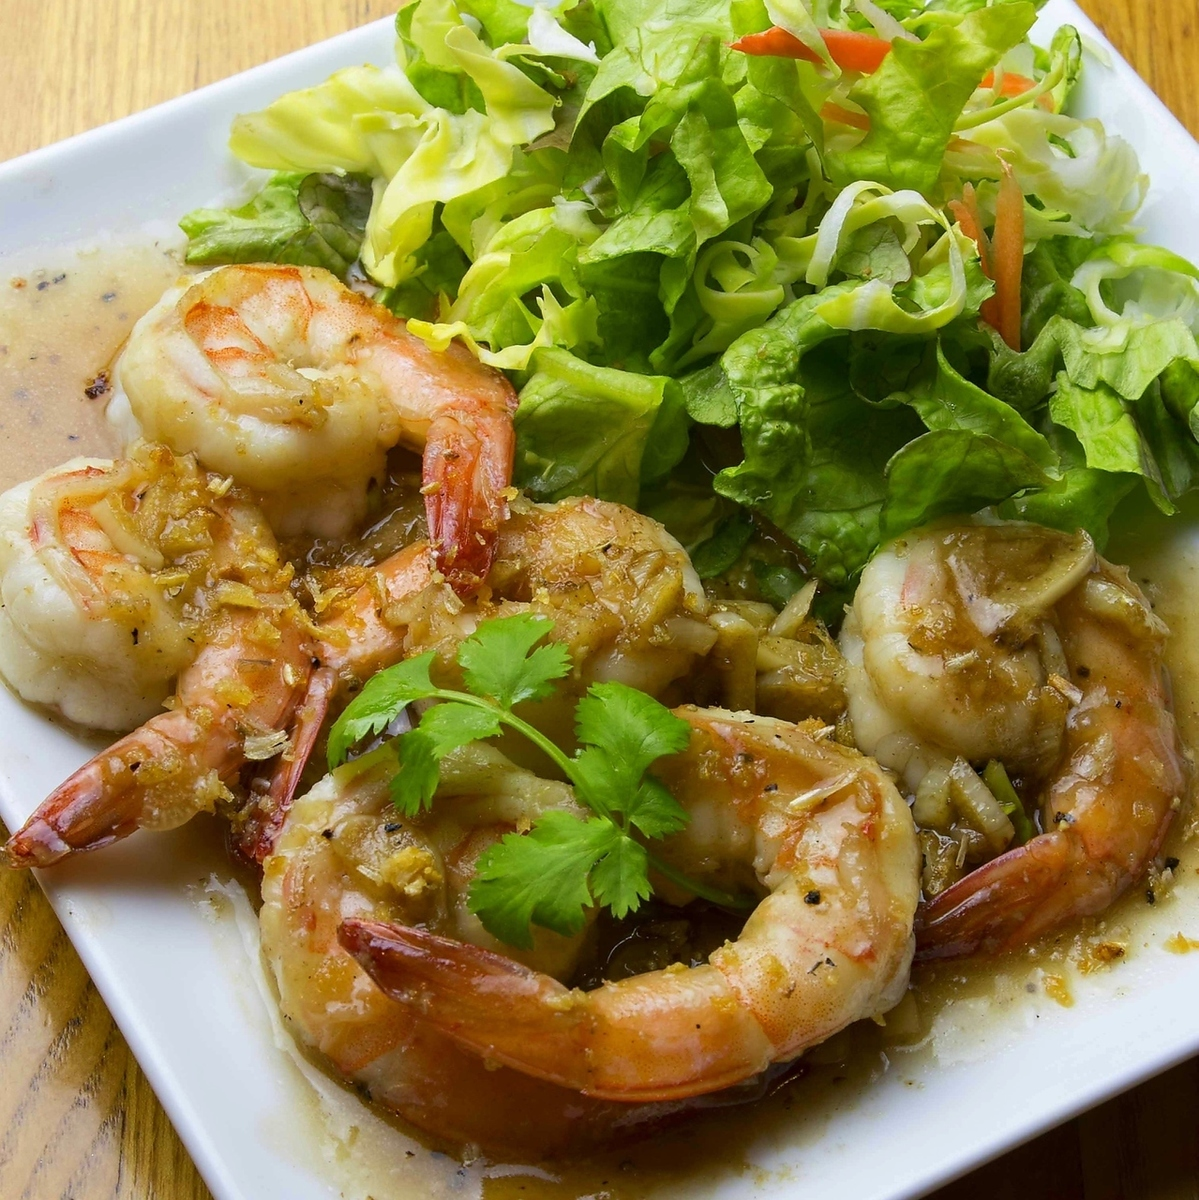 Stir-fried shrimp with garlic